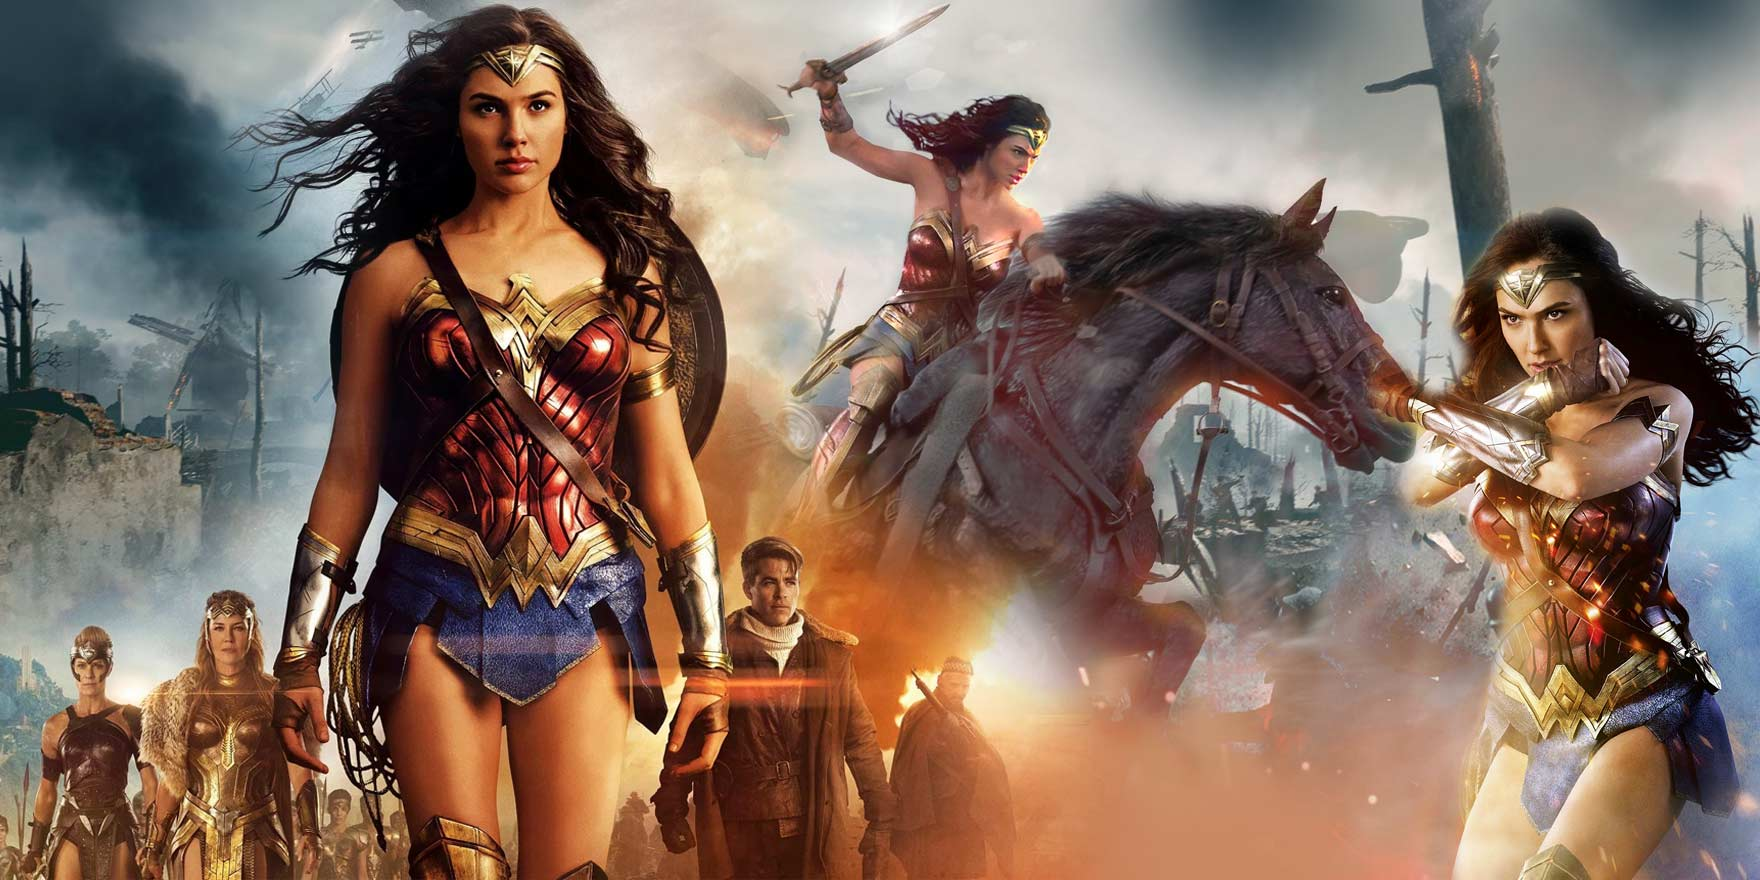 Wonder Woman - Header Image